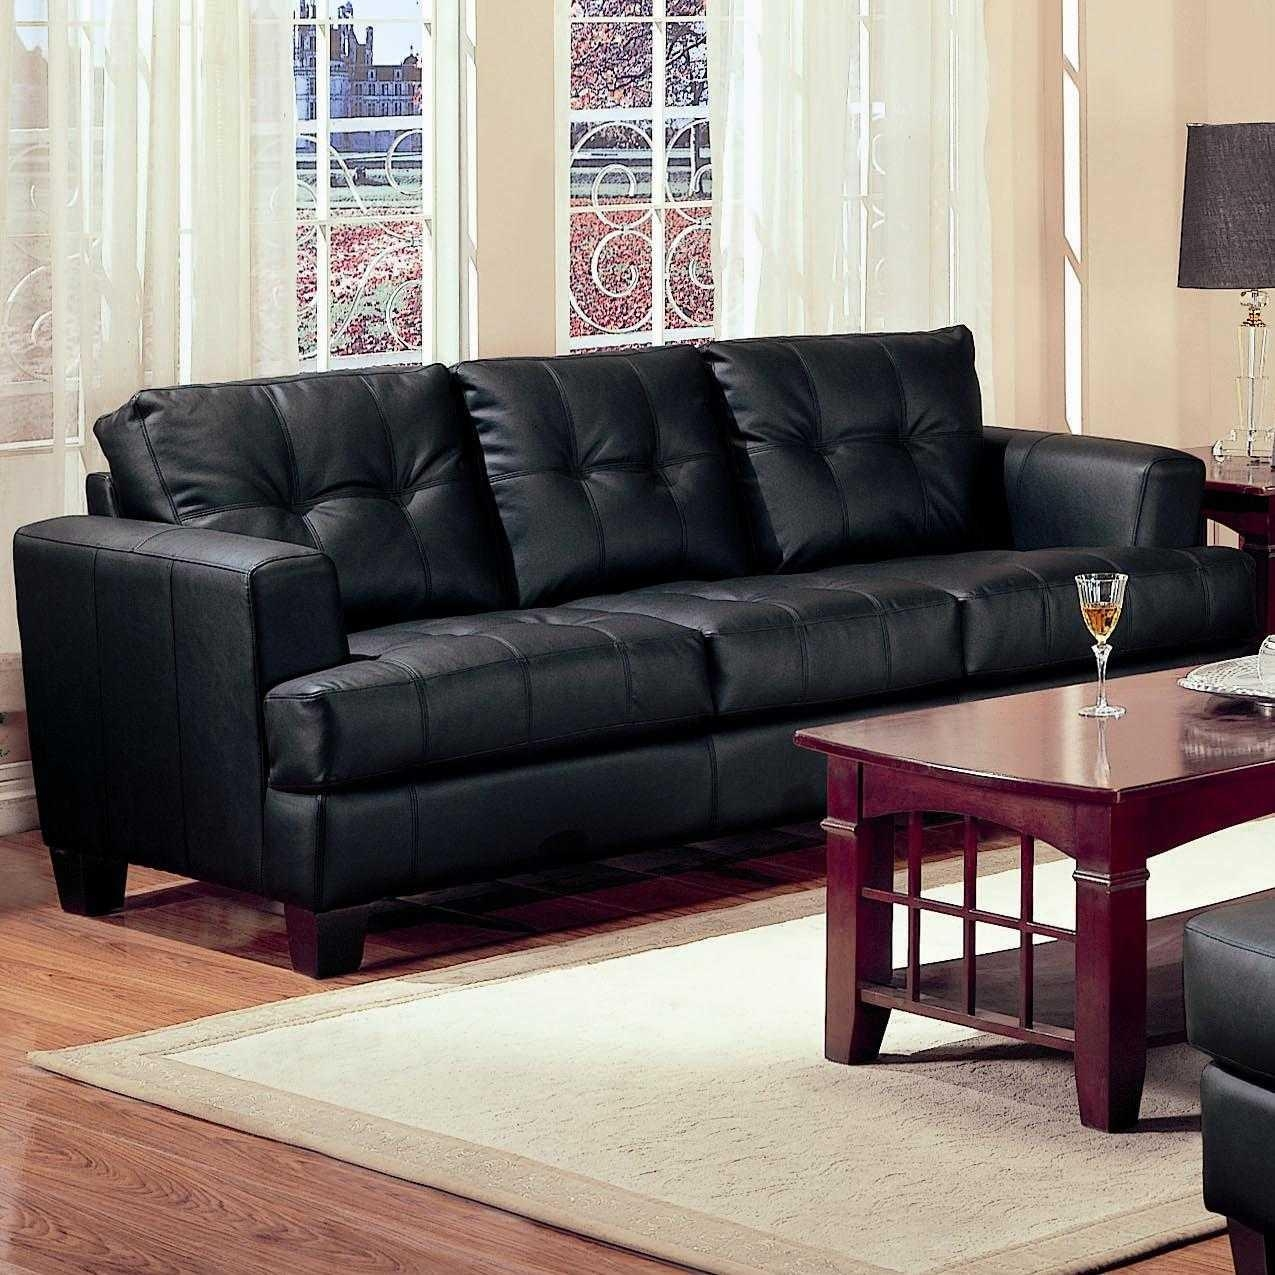 Sofas Austin Tx Within Austin Sectional Sofa (Image 11 of 15)